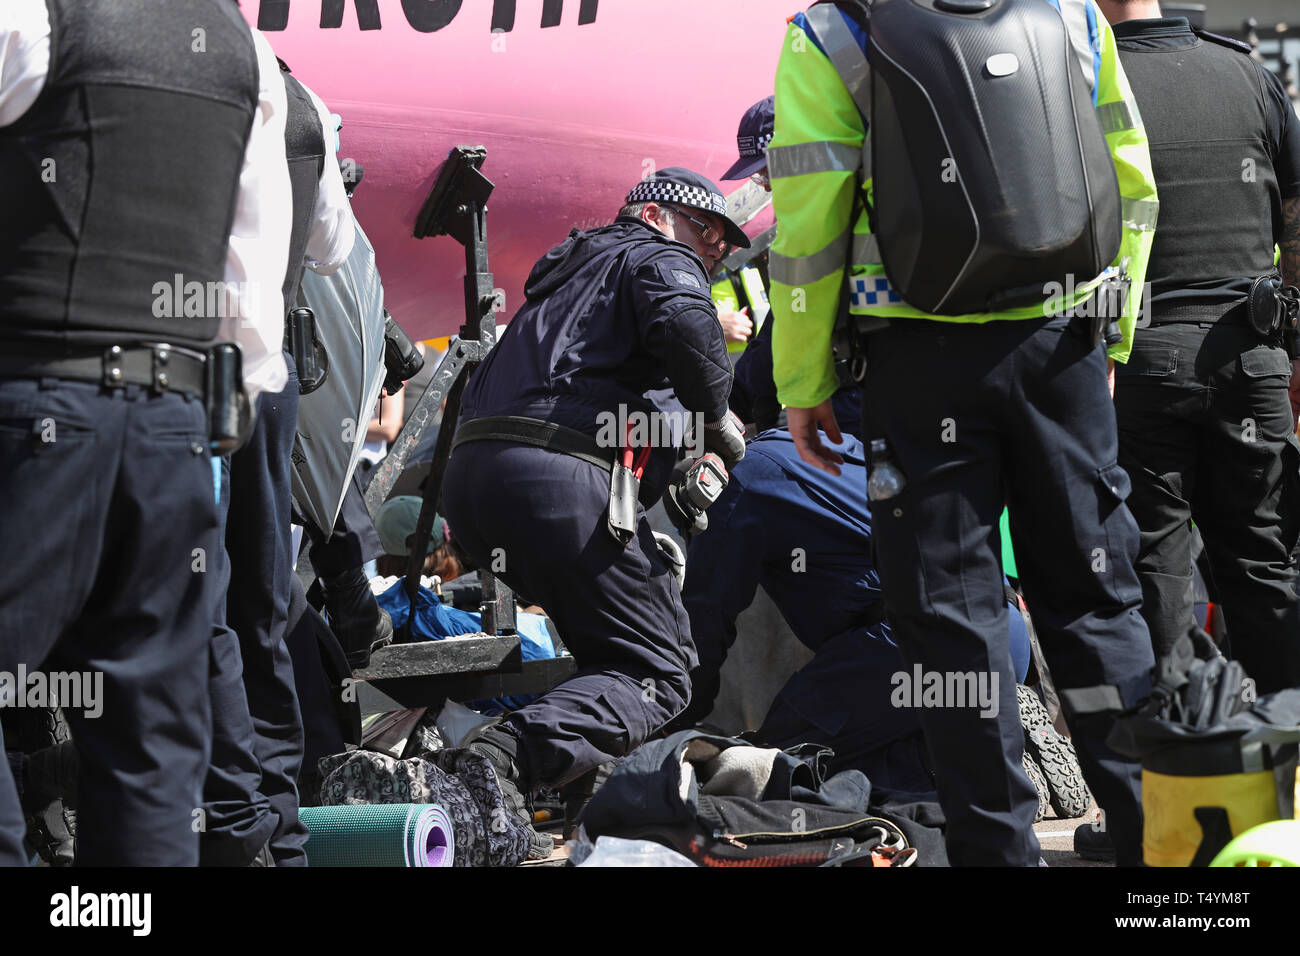 Police prepare to remove Extinction Rebellion demonstrators from the boat at Oxford Circus in London. Stock Photo